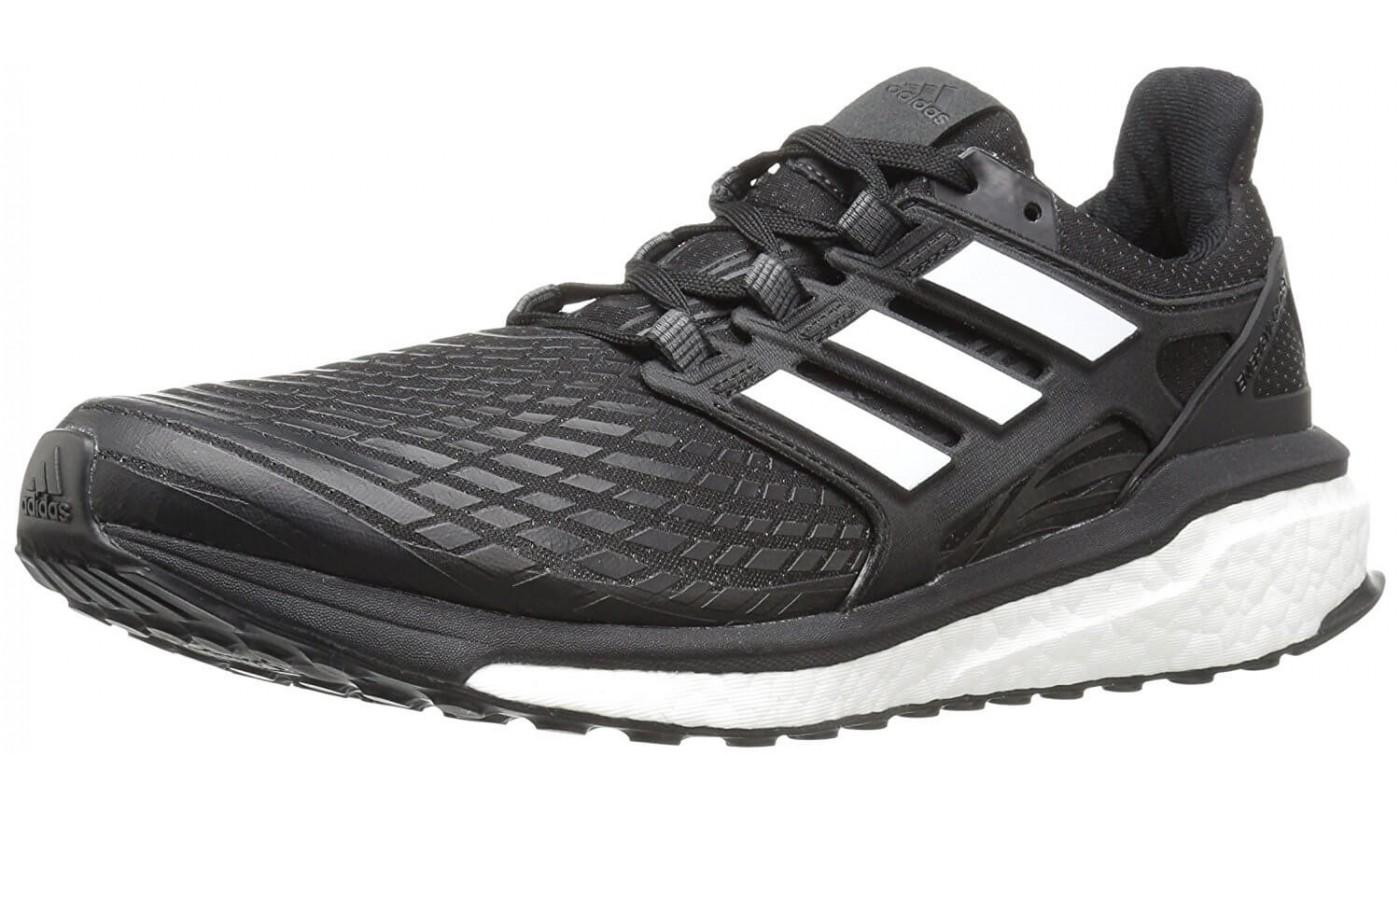 super popular a5b83 d16ab Adidas Energy Boost shown from the frontside ...